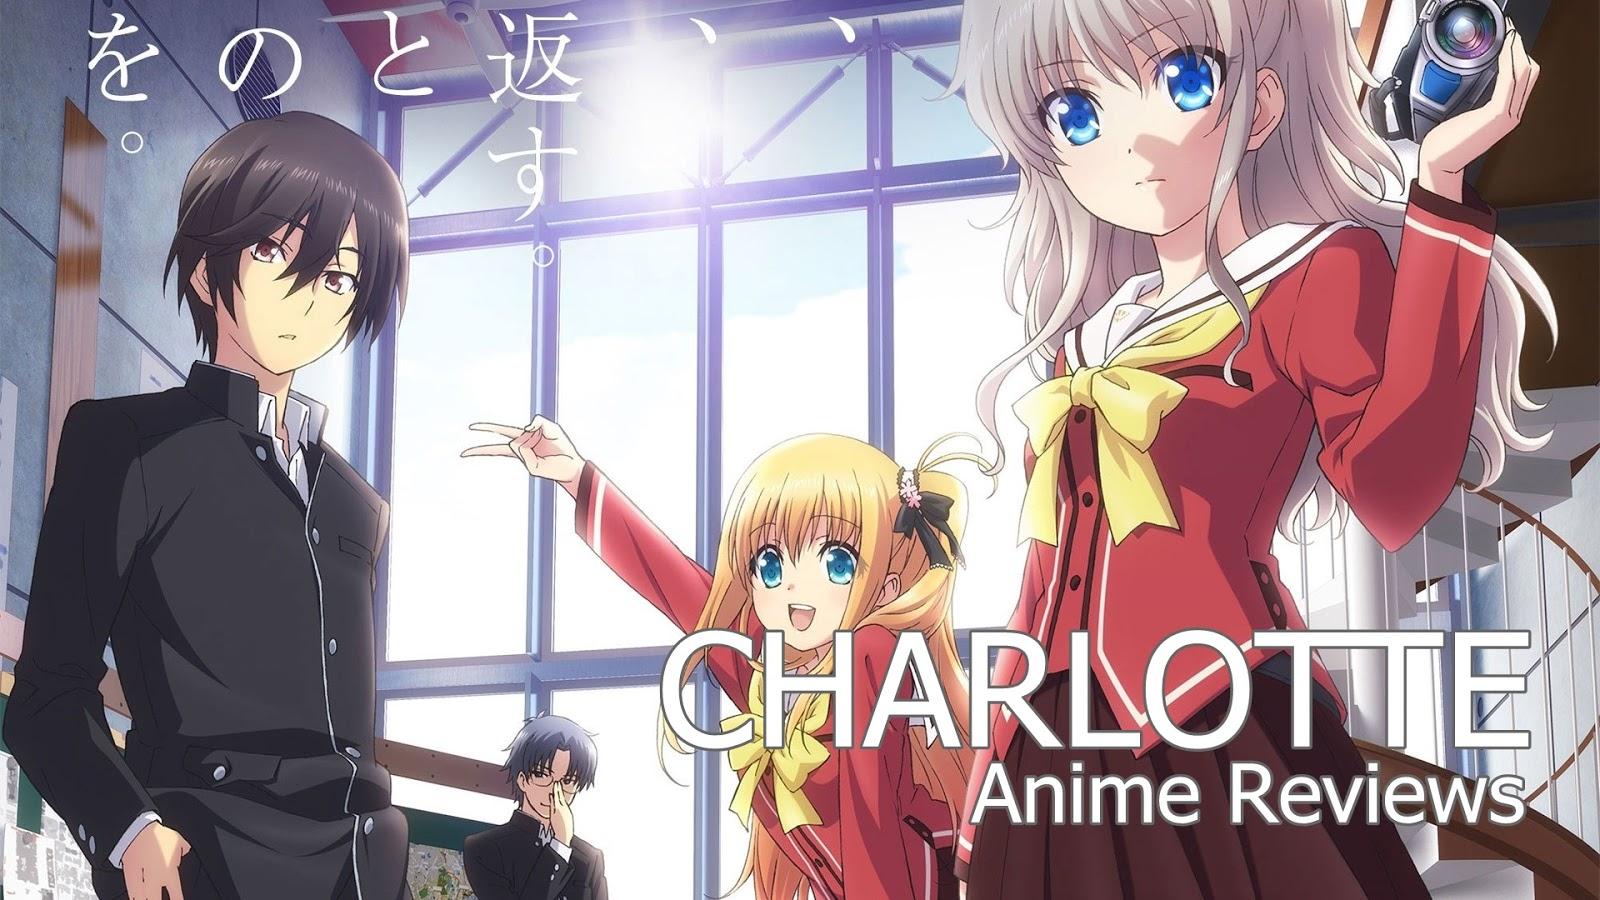 Charlotte Is A Japanese Television Anime Series Written By Jun Maeda Produced PAWorks And Aniplex Directed Yoshiyuki Asai